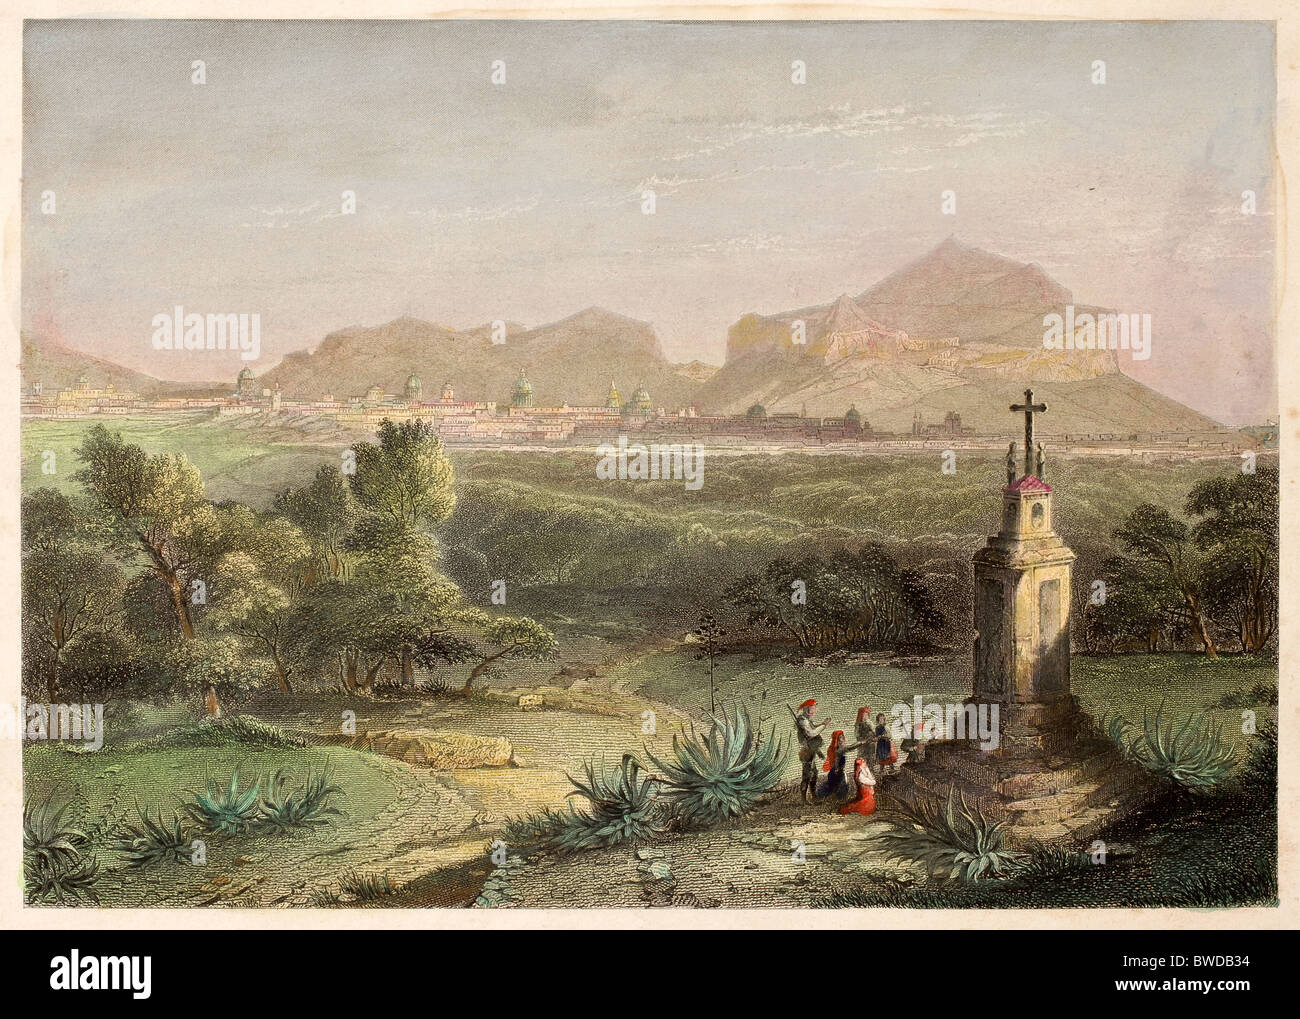 Old print, datable to the 19th century,  shows image of a religious monument near Palermo, Italy - Stock Image